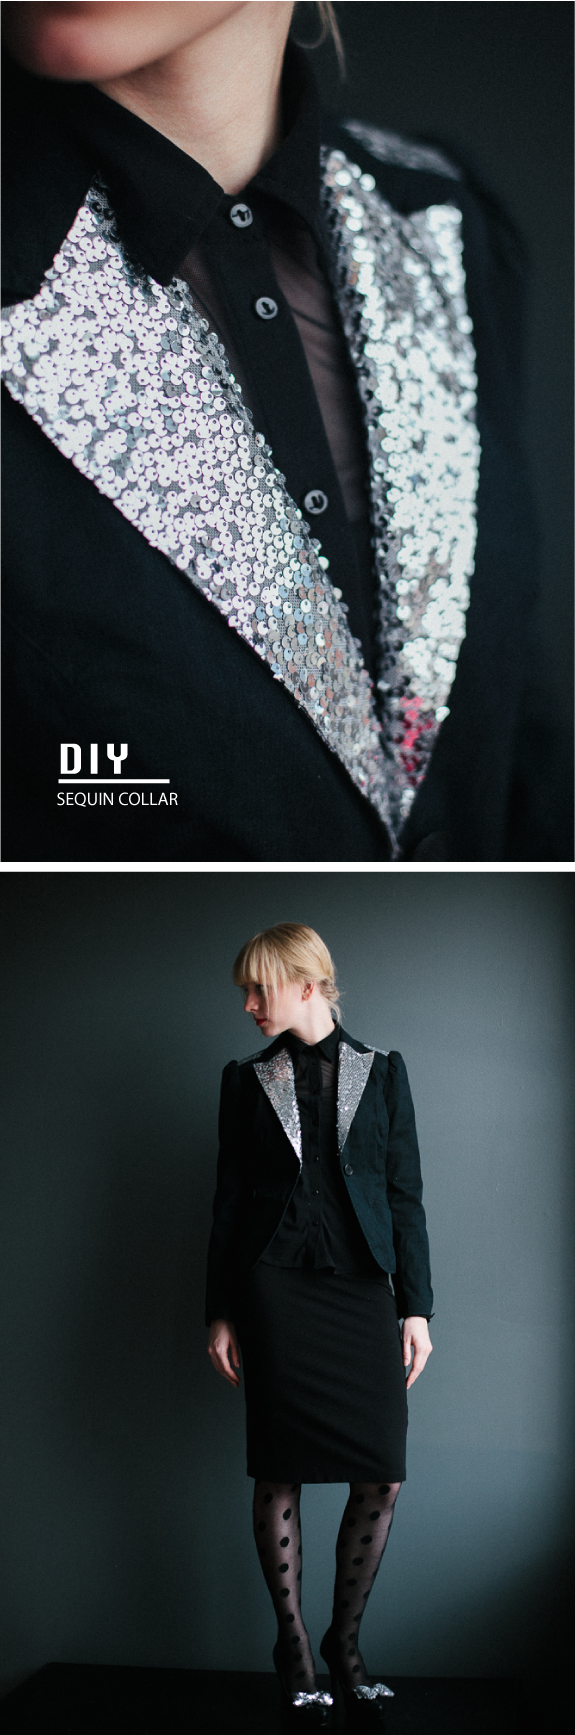 DIY: sequin jacket collar